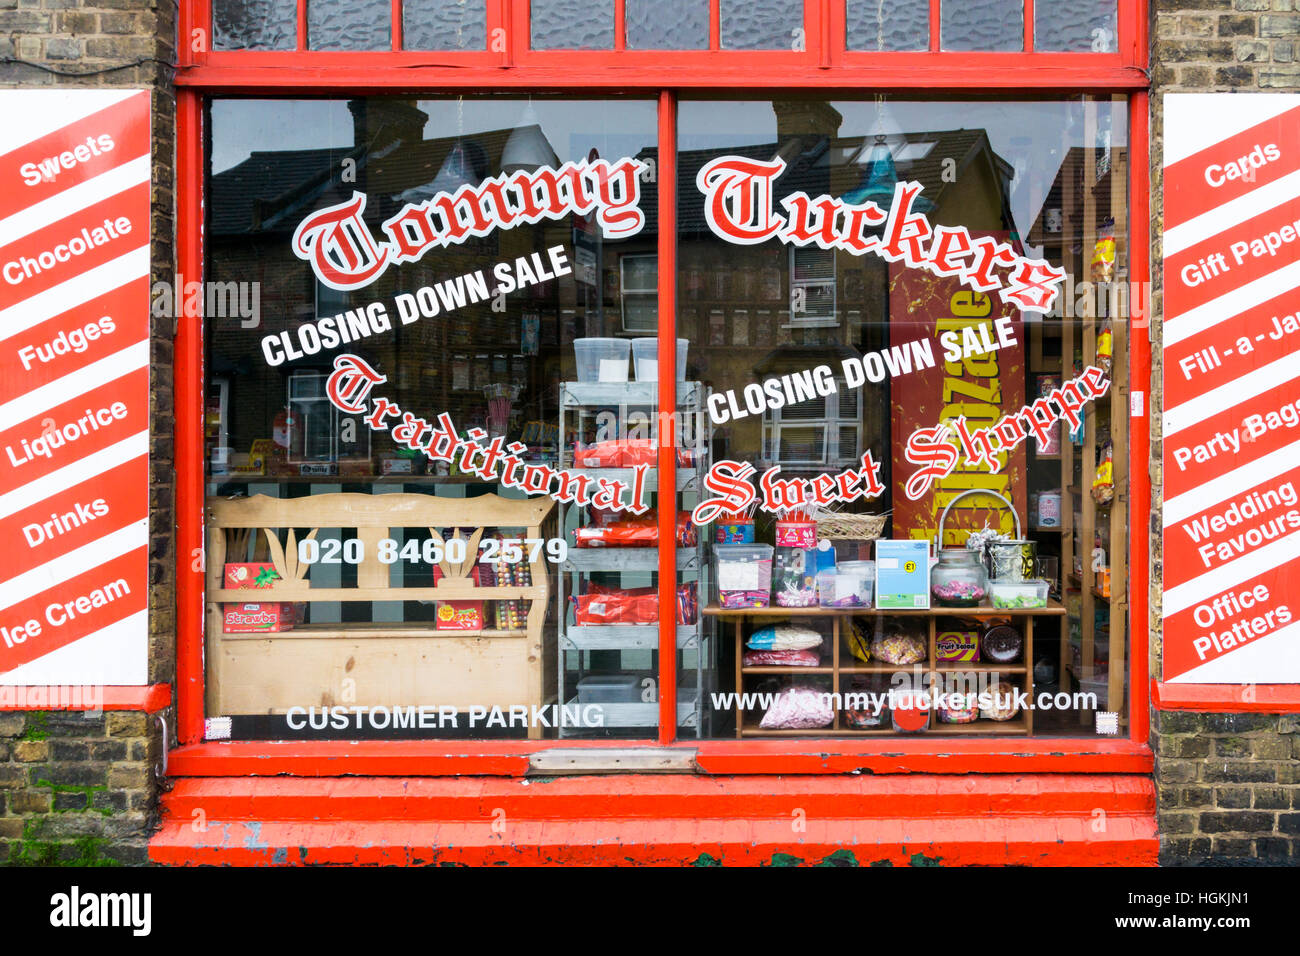 Closing Down Sale at Tommy Tuckers Traditional Sweet Shoppe. - Stock Image